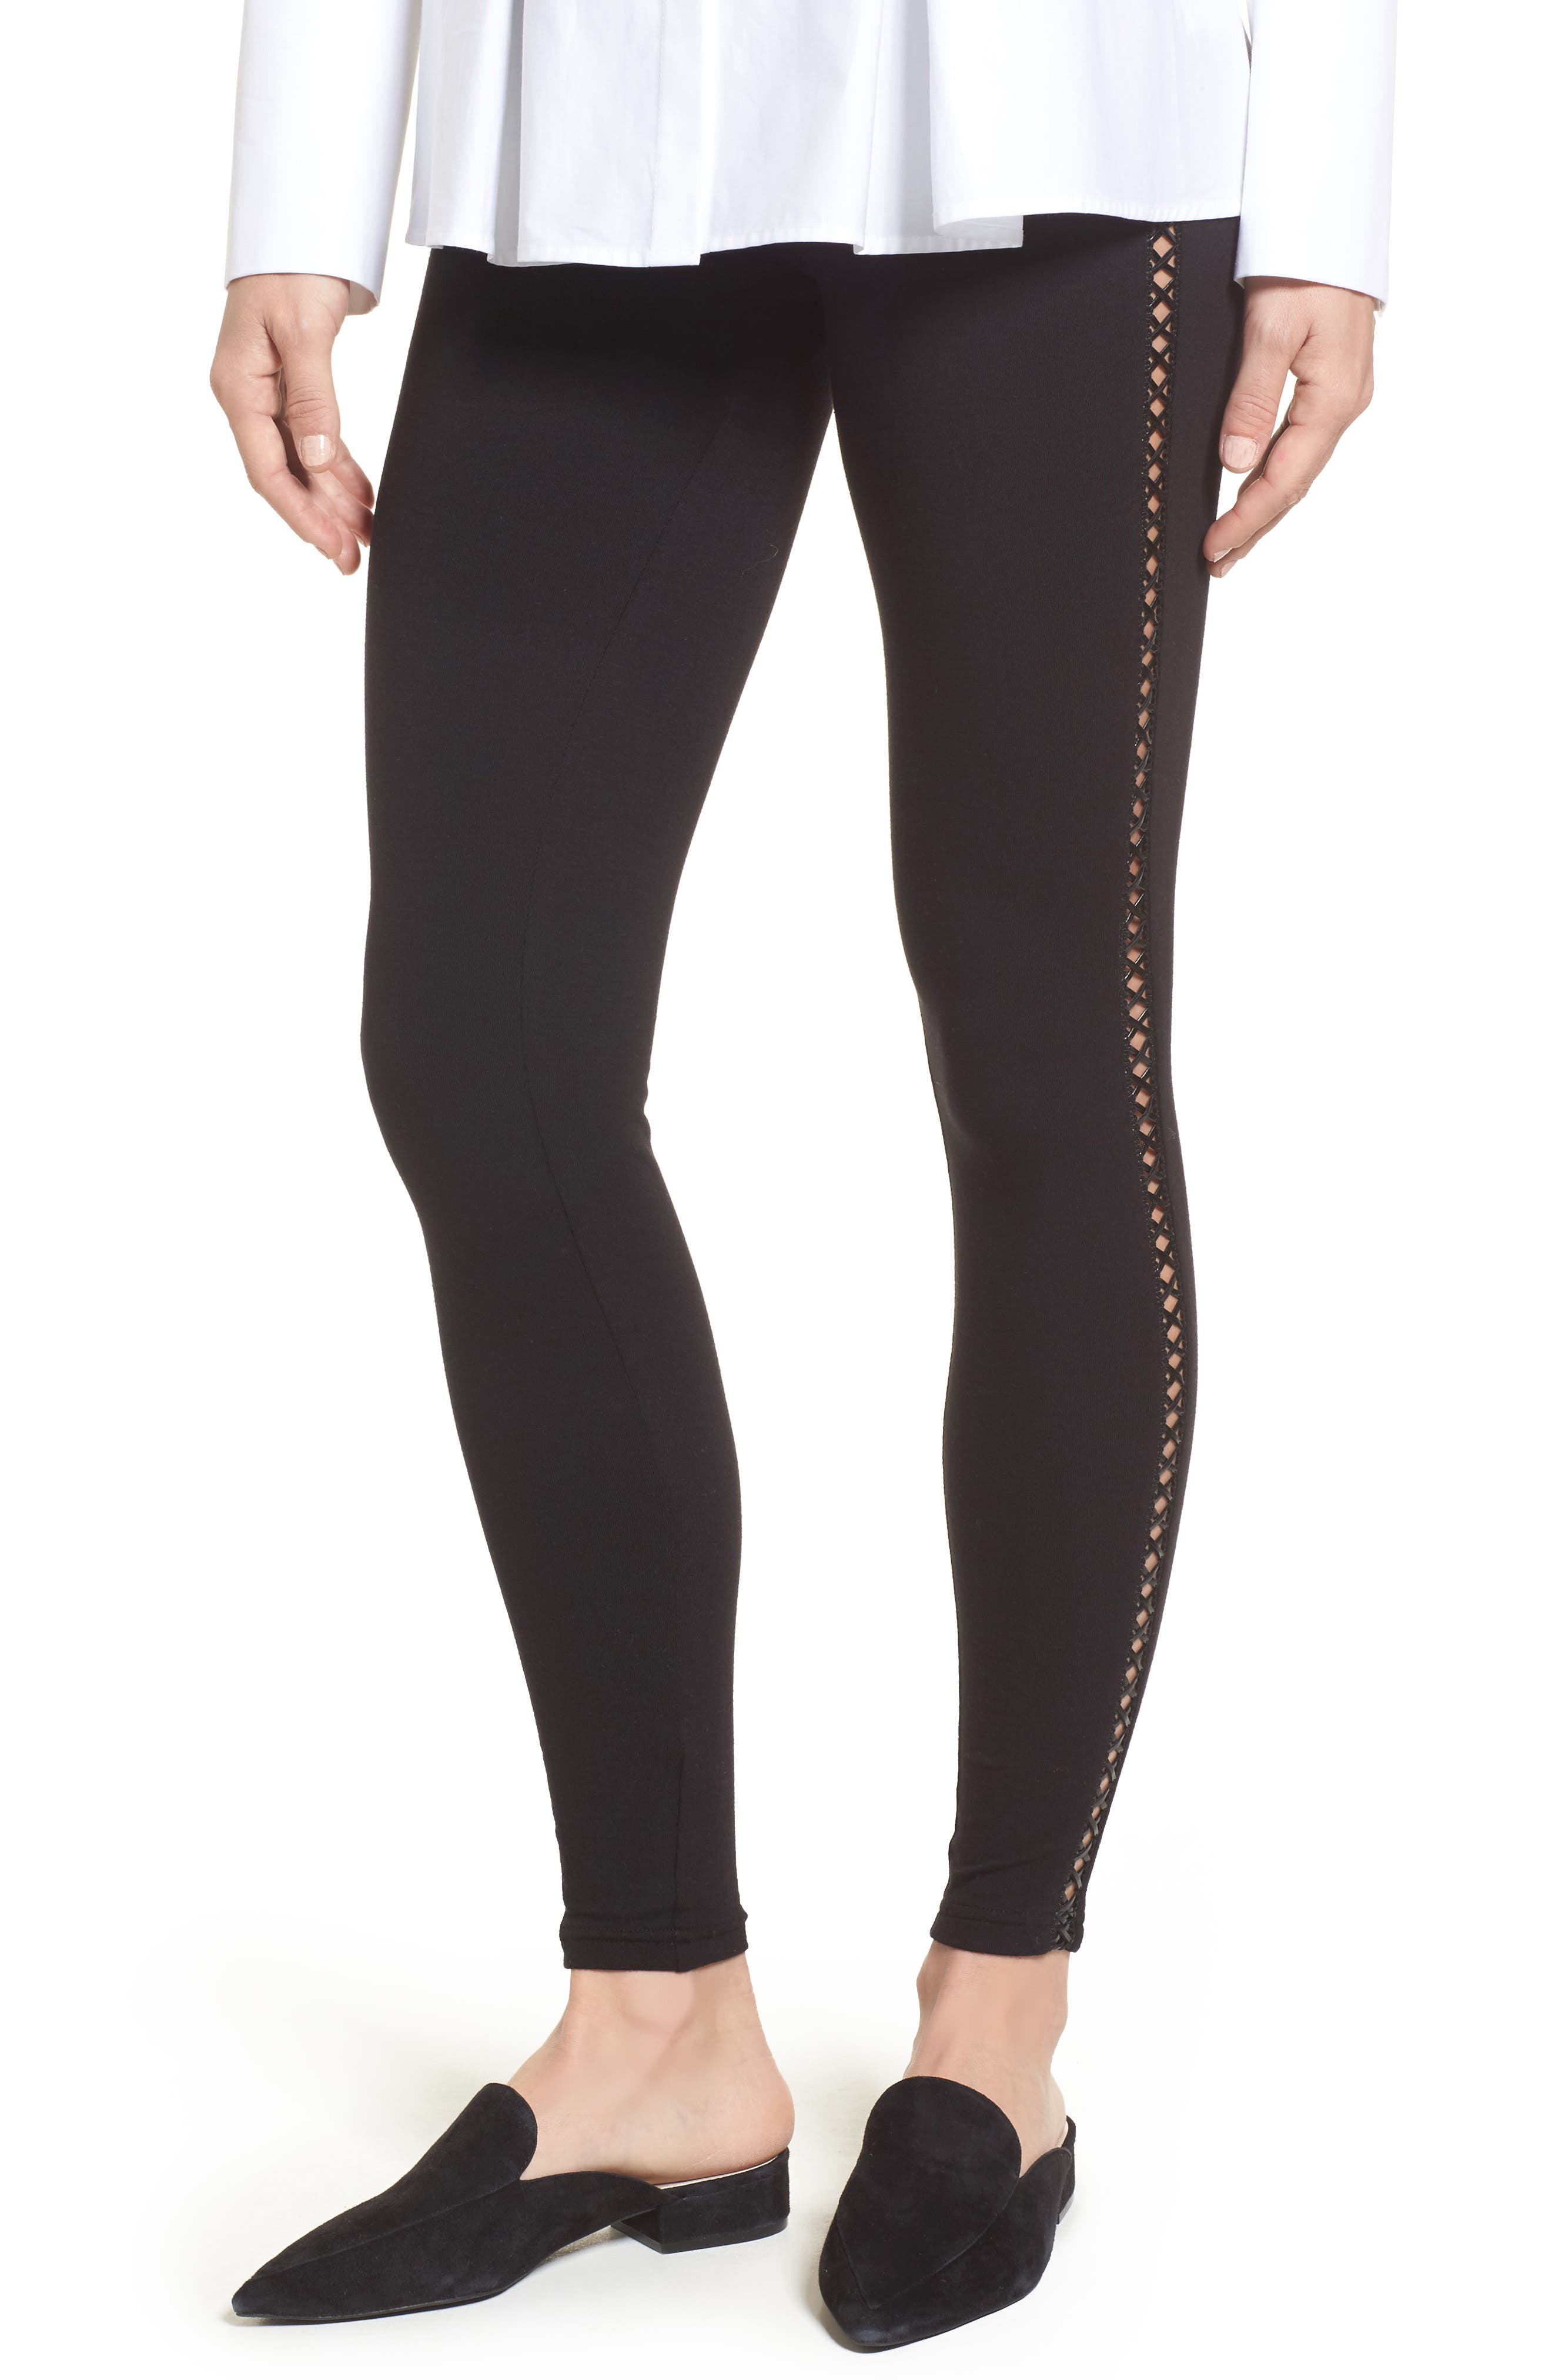 Alternate Image 1 Selected - Zeza B by Hue Faux Leather Tuxedo Stripe Leggings